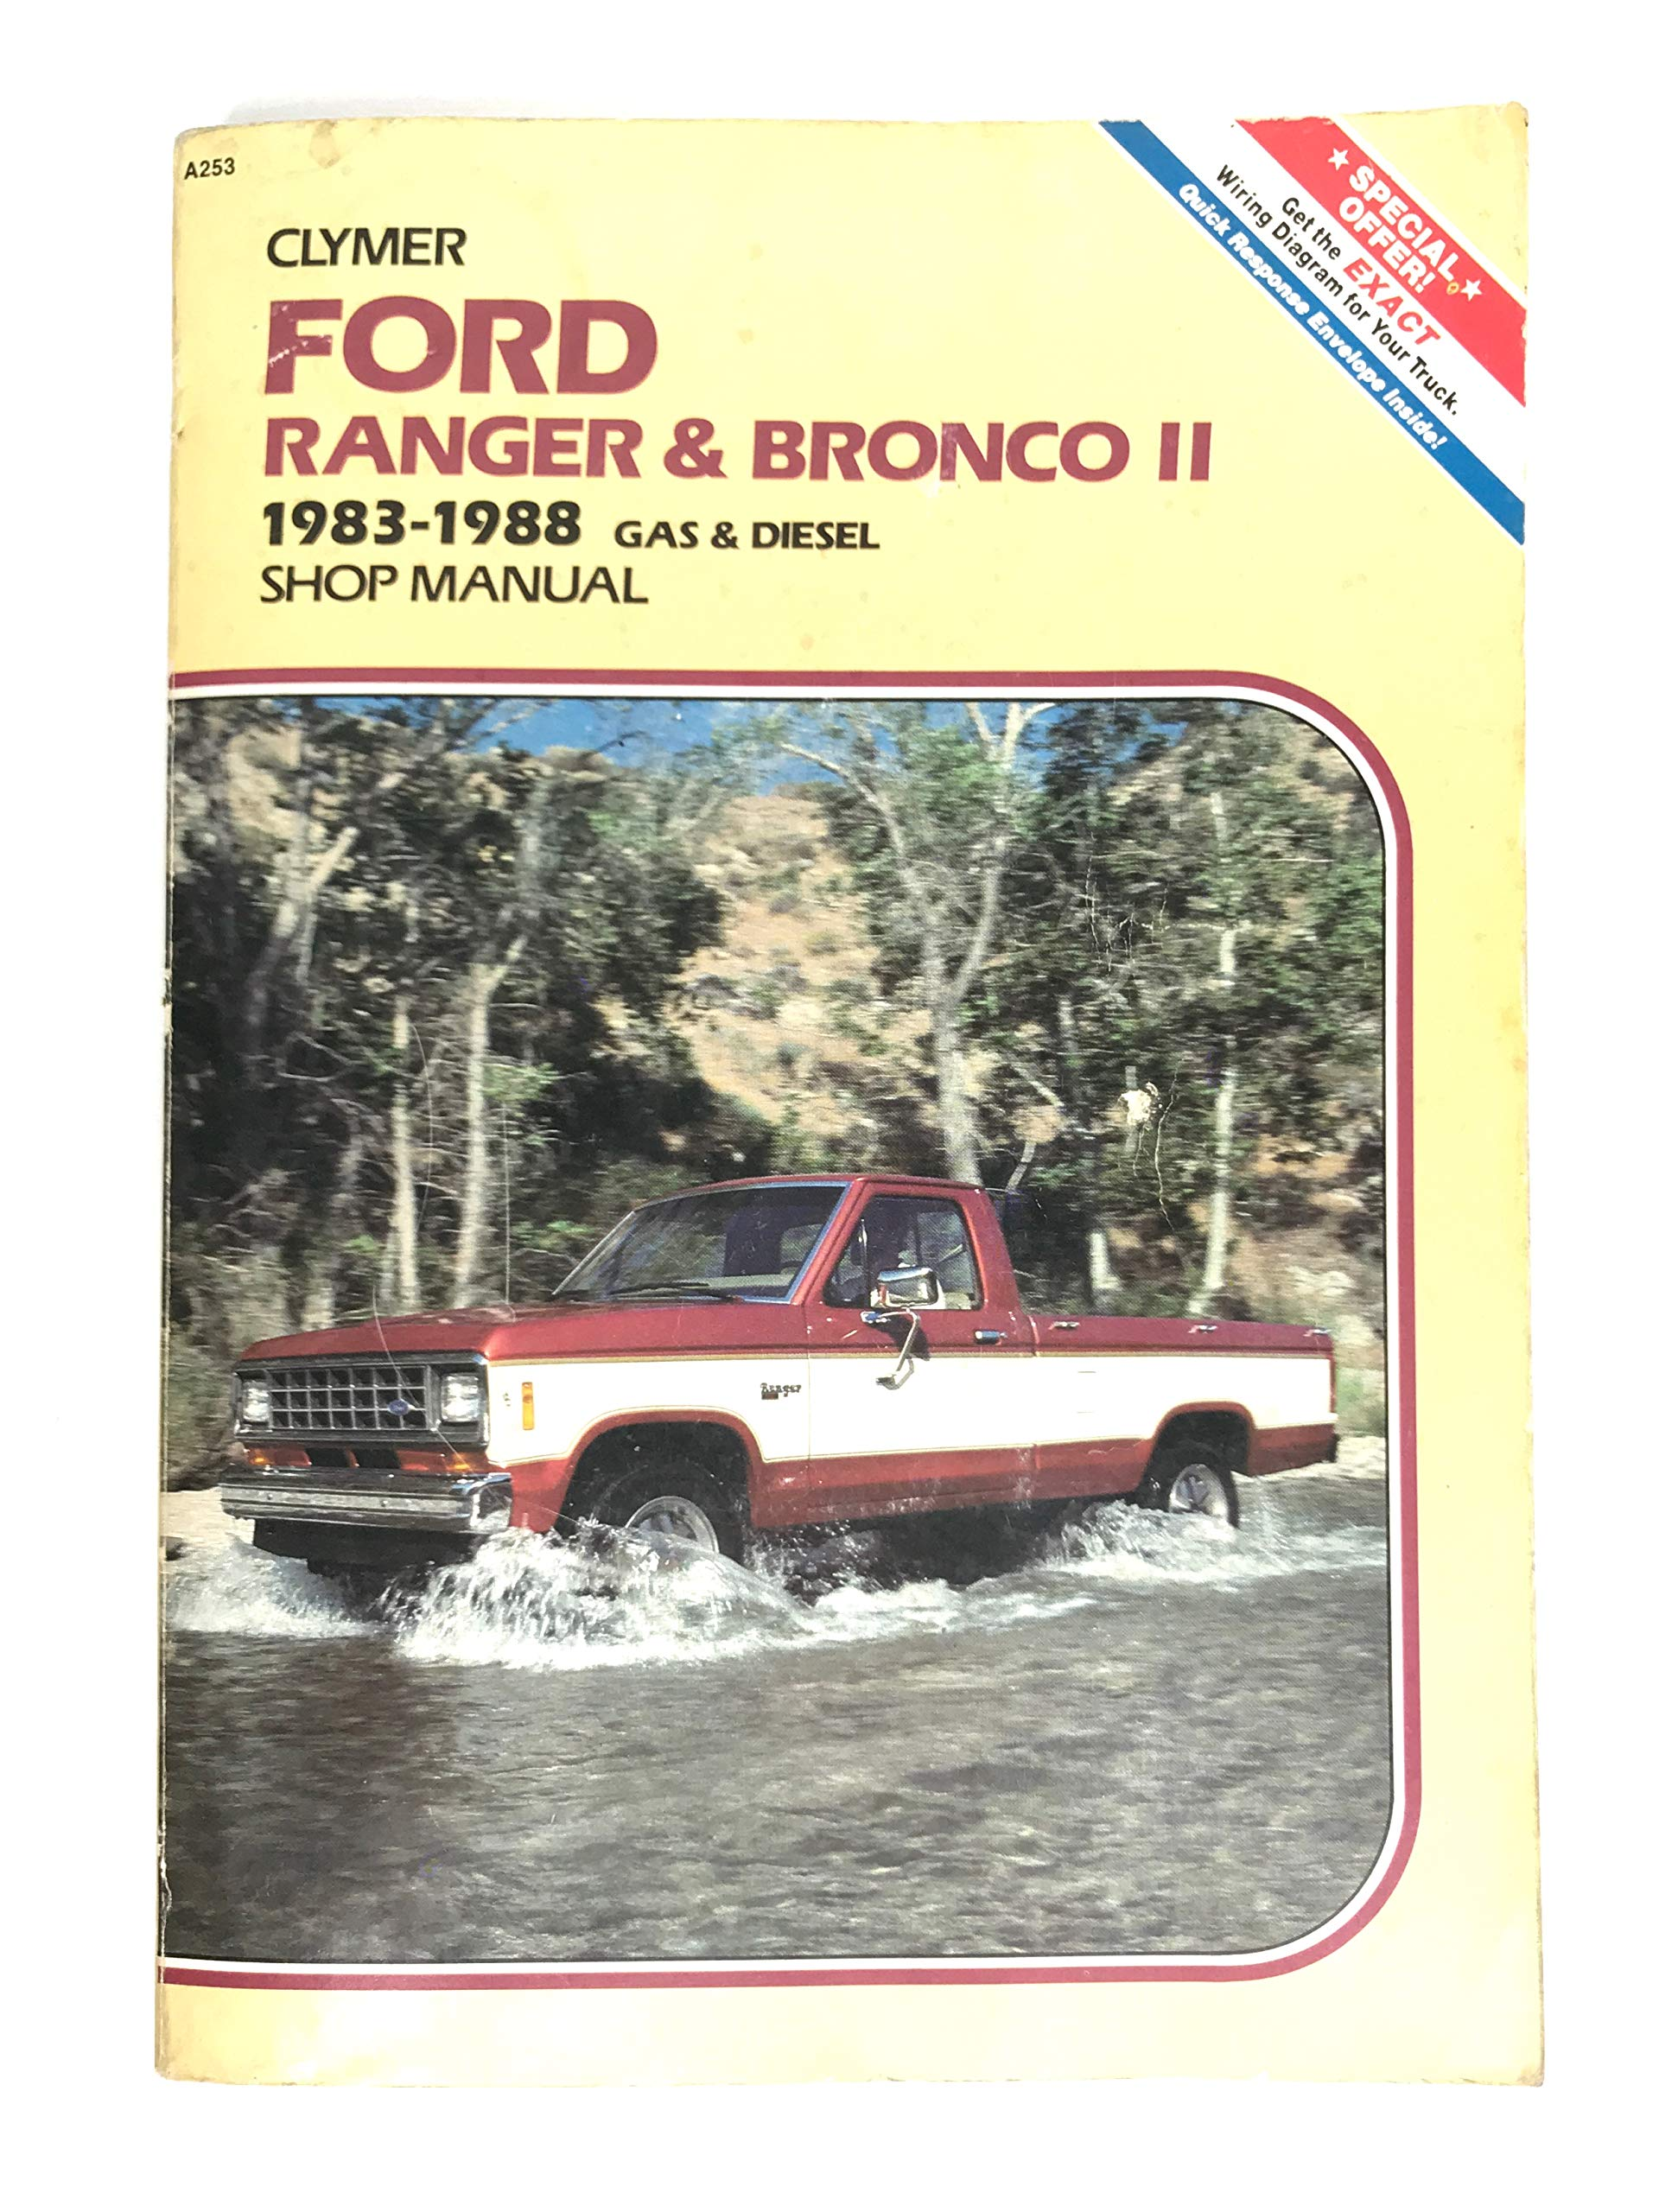 Ford Ranger and Bronco II 1983-1988 Gas and Diesel Shop Manual: Lahue,  Kalton C.: 9780892873760: Amazon.com: BooksAmazon.com